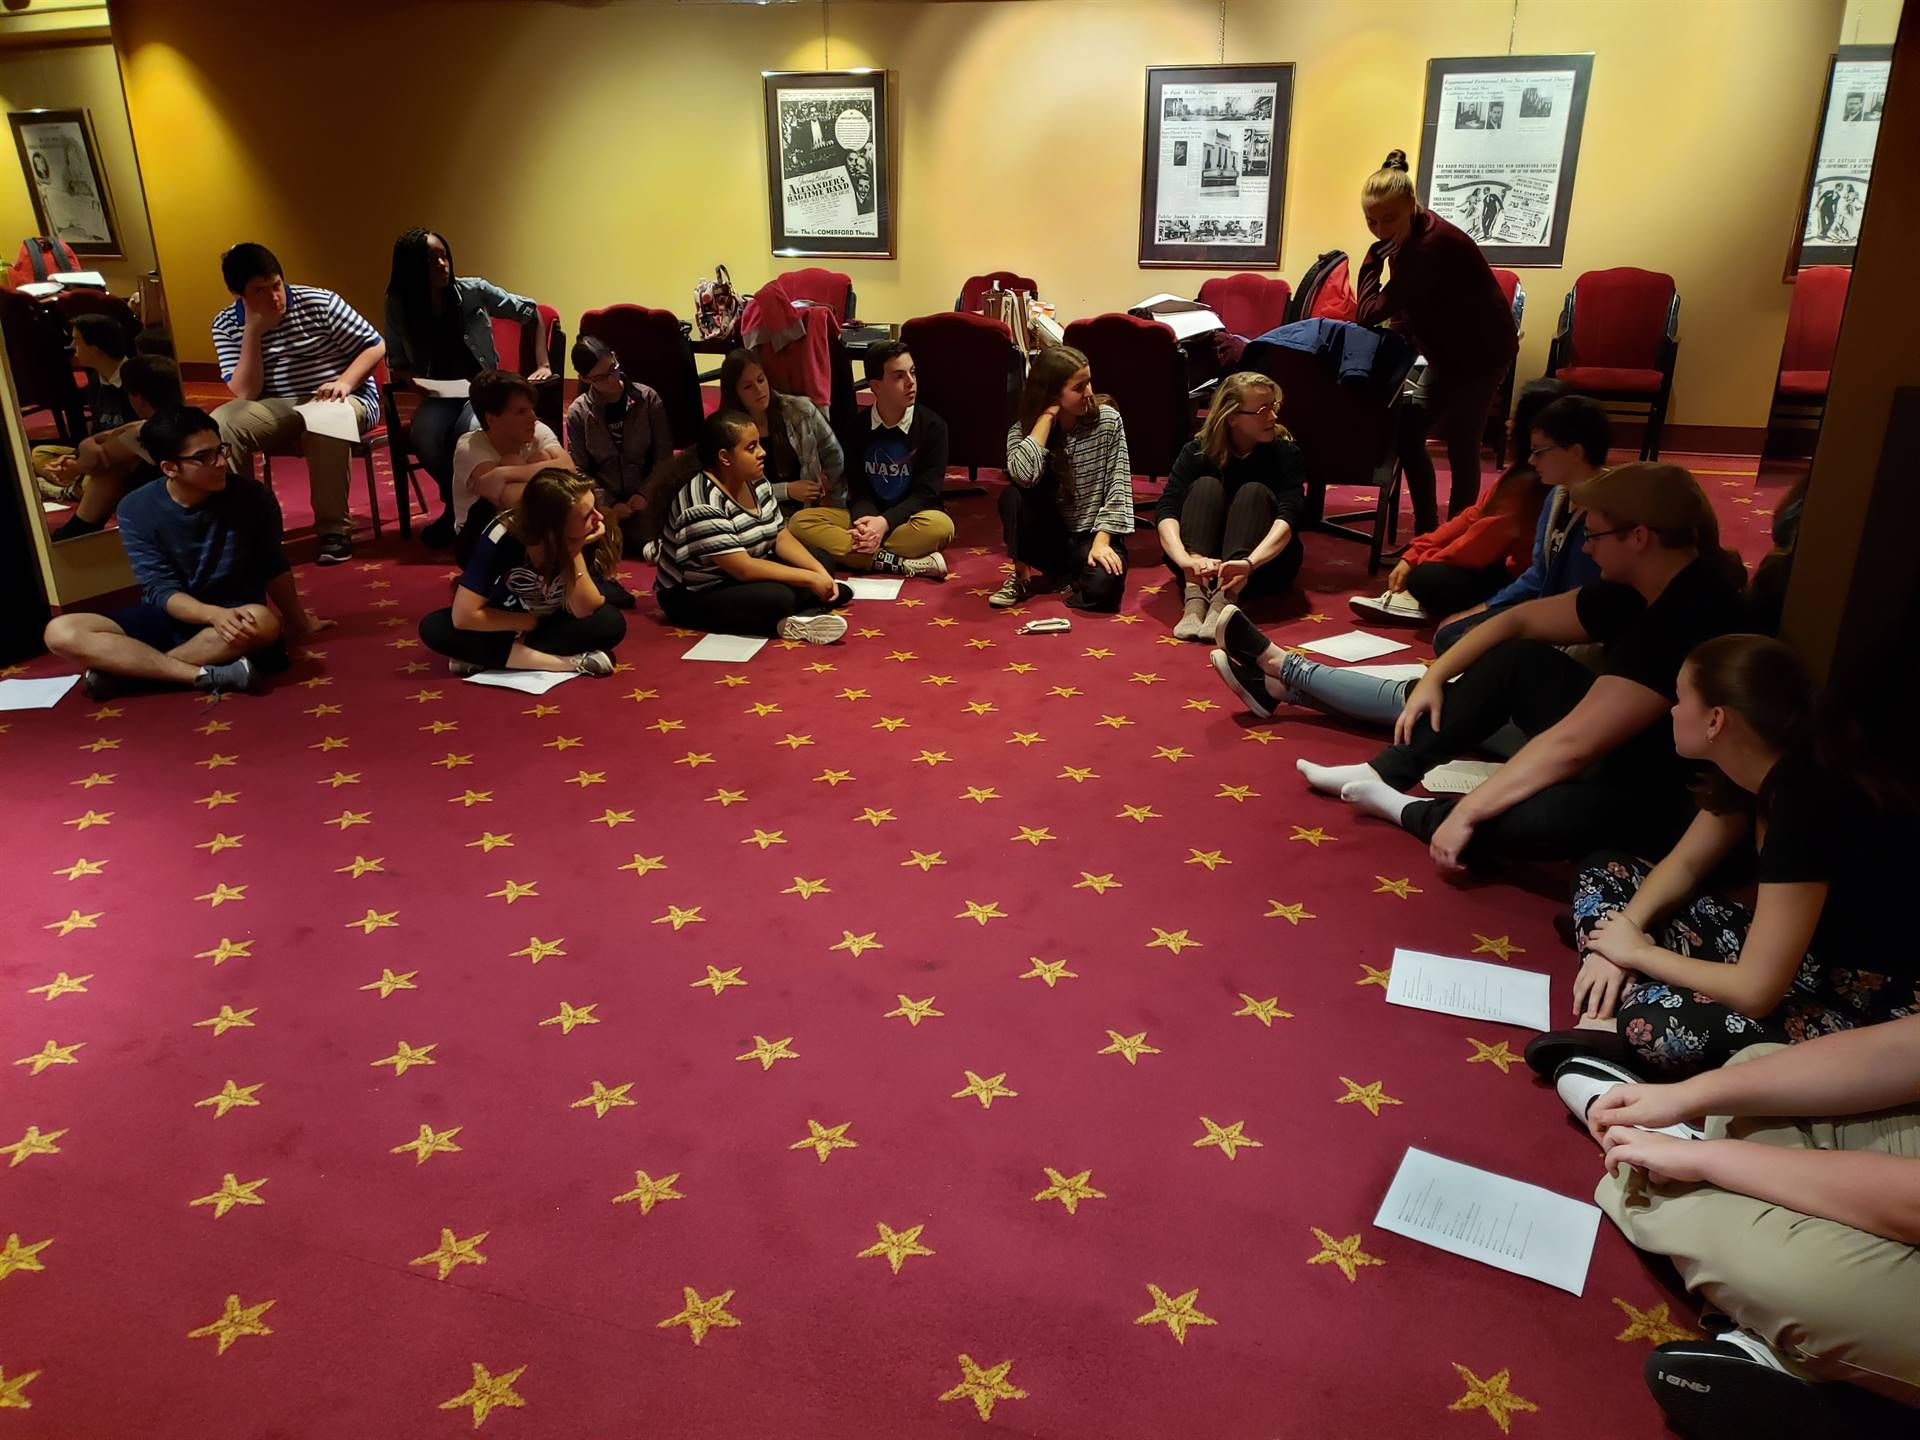 Theatre Arts Master Class at the Kirby Center